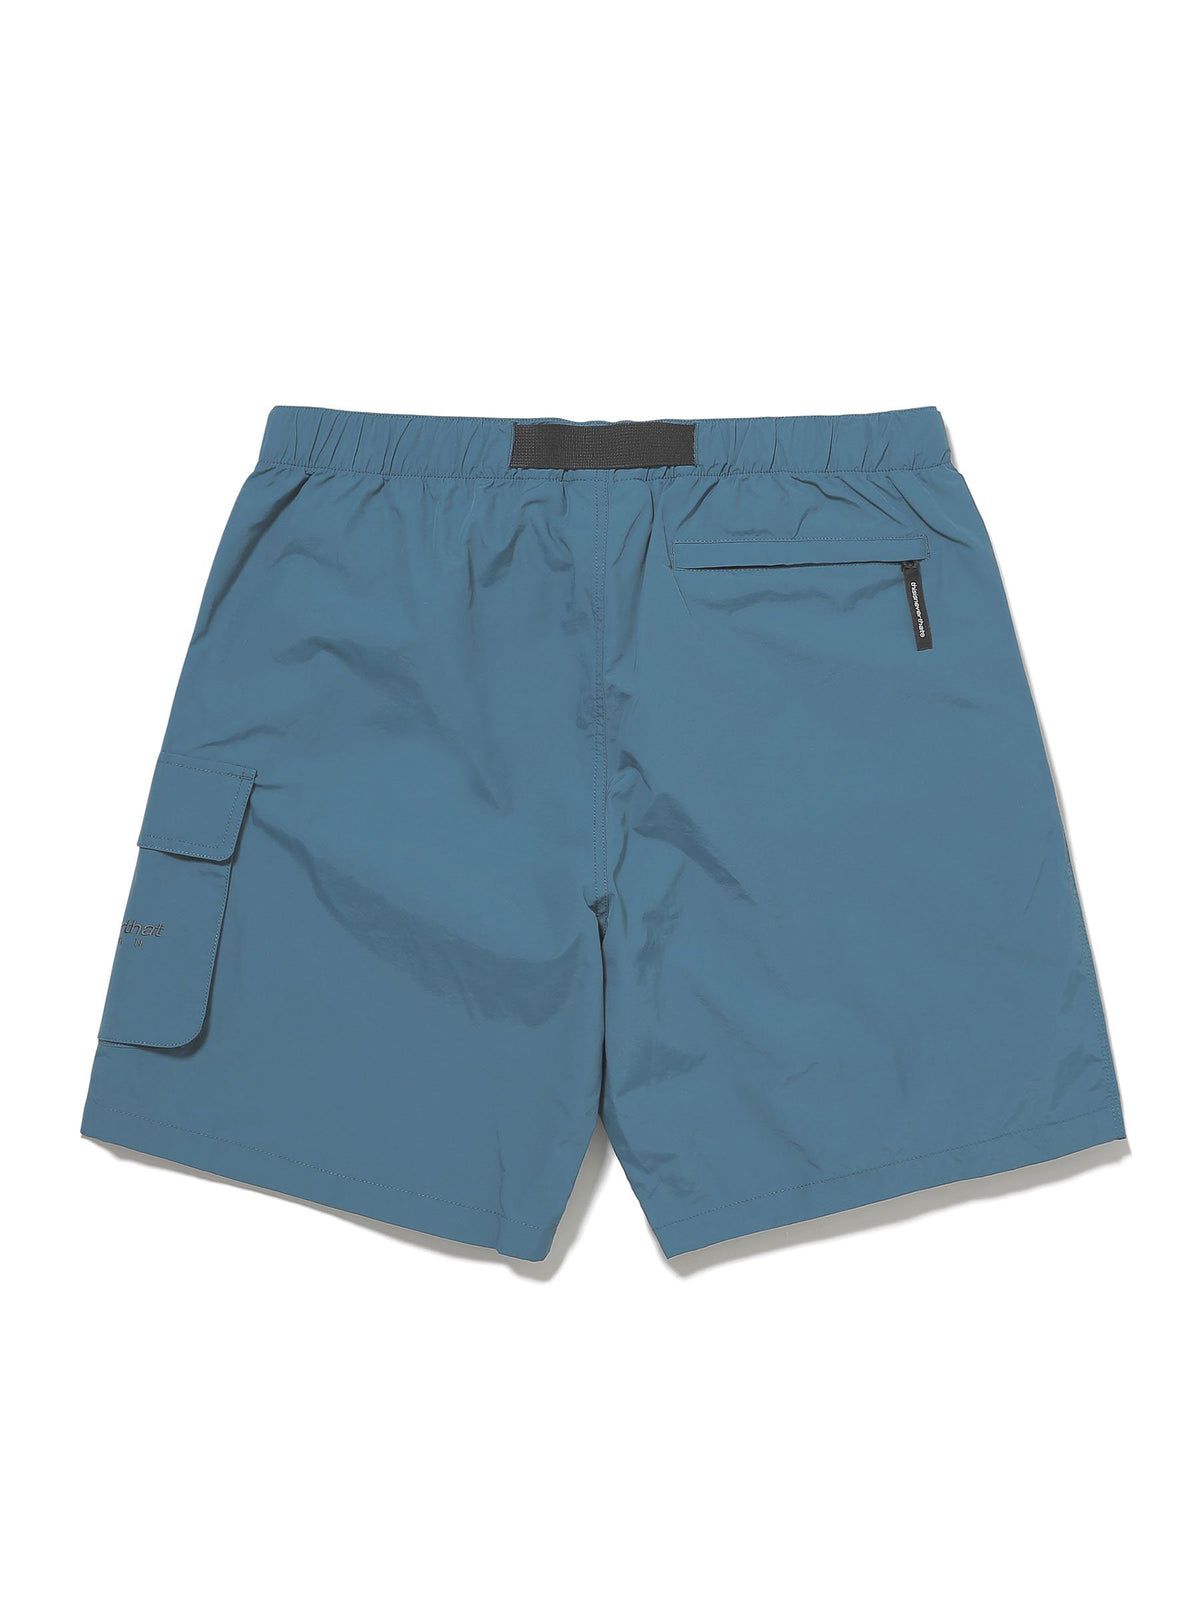 DSN Hiking Short - thisisneverthat